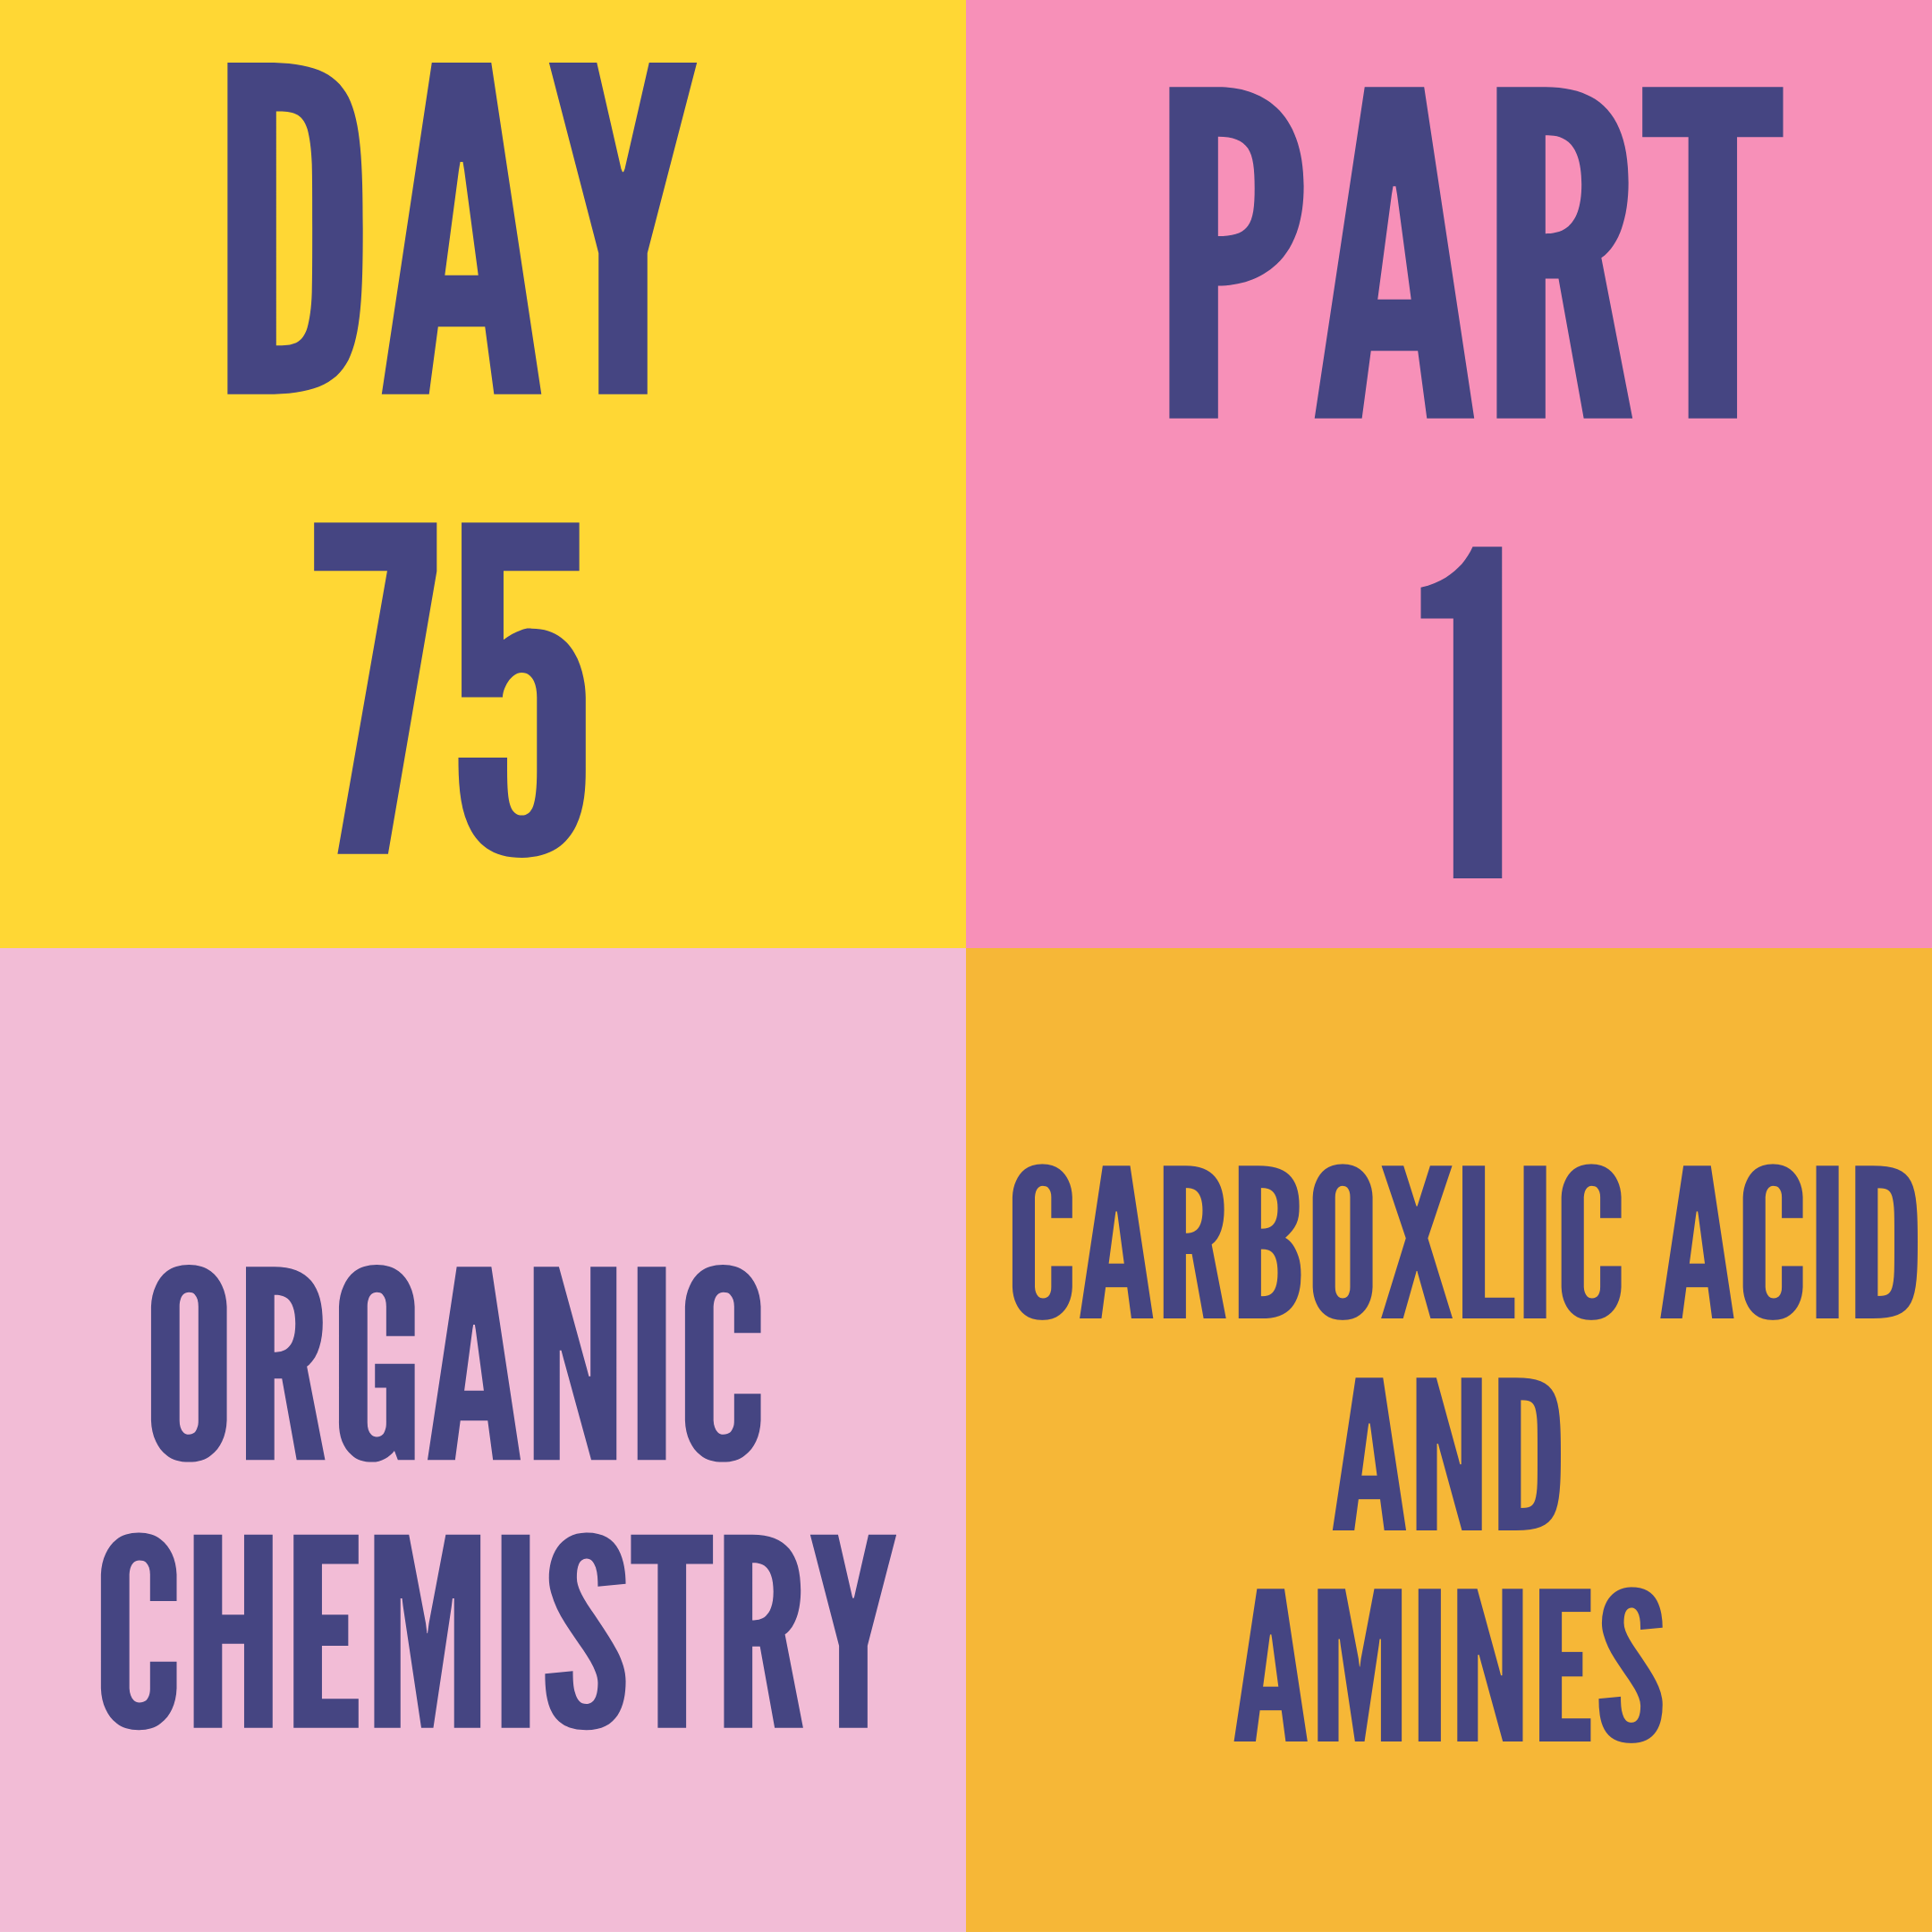 DAY-75 PART-1 CARBOXYLIC ACID AND AMINES